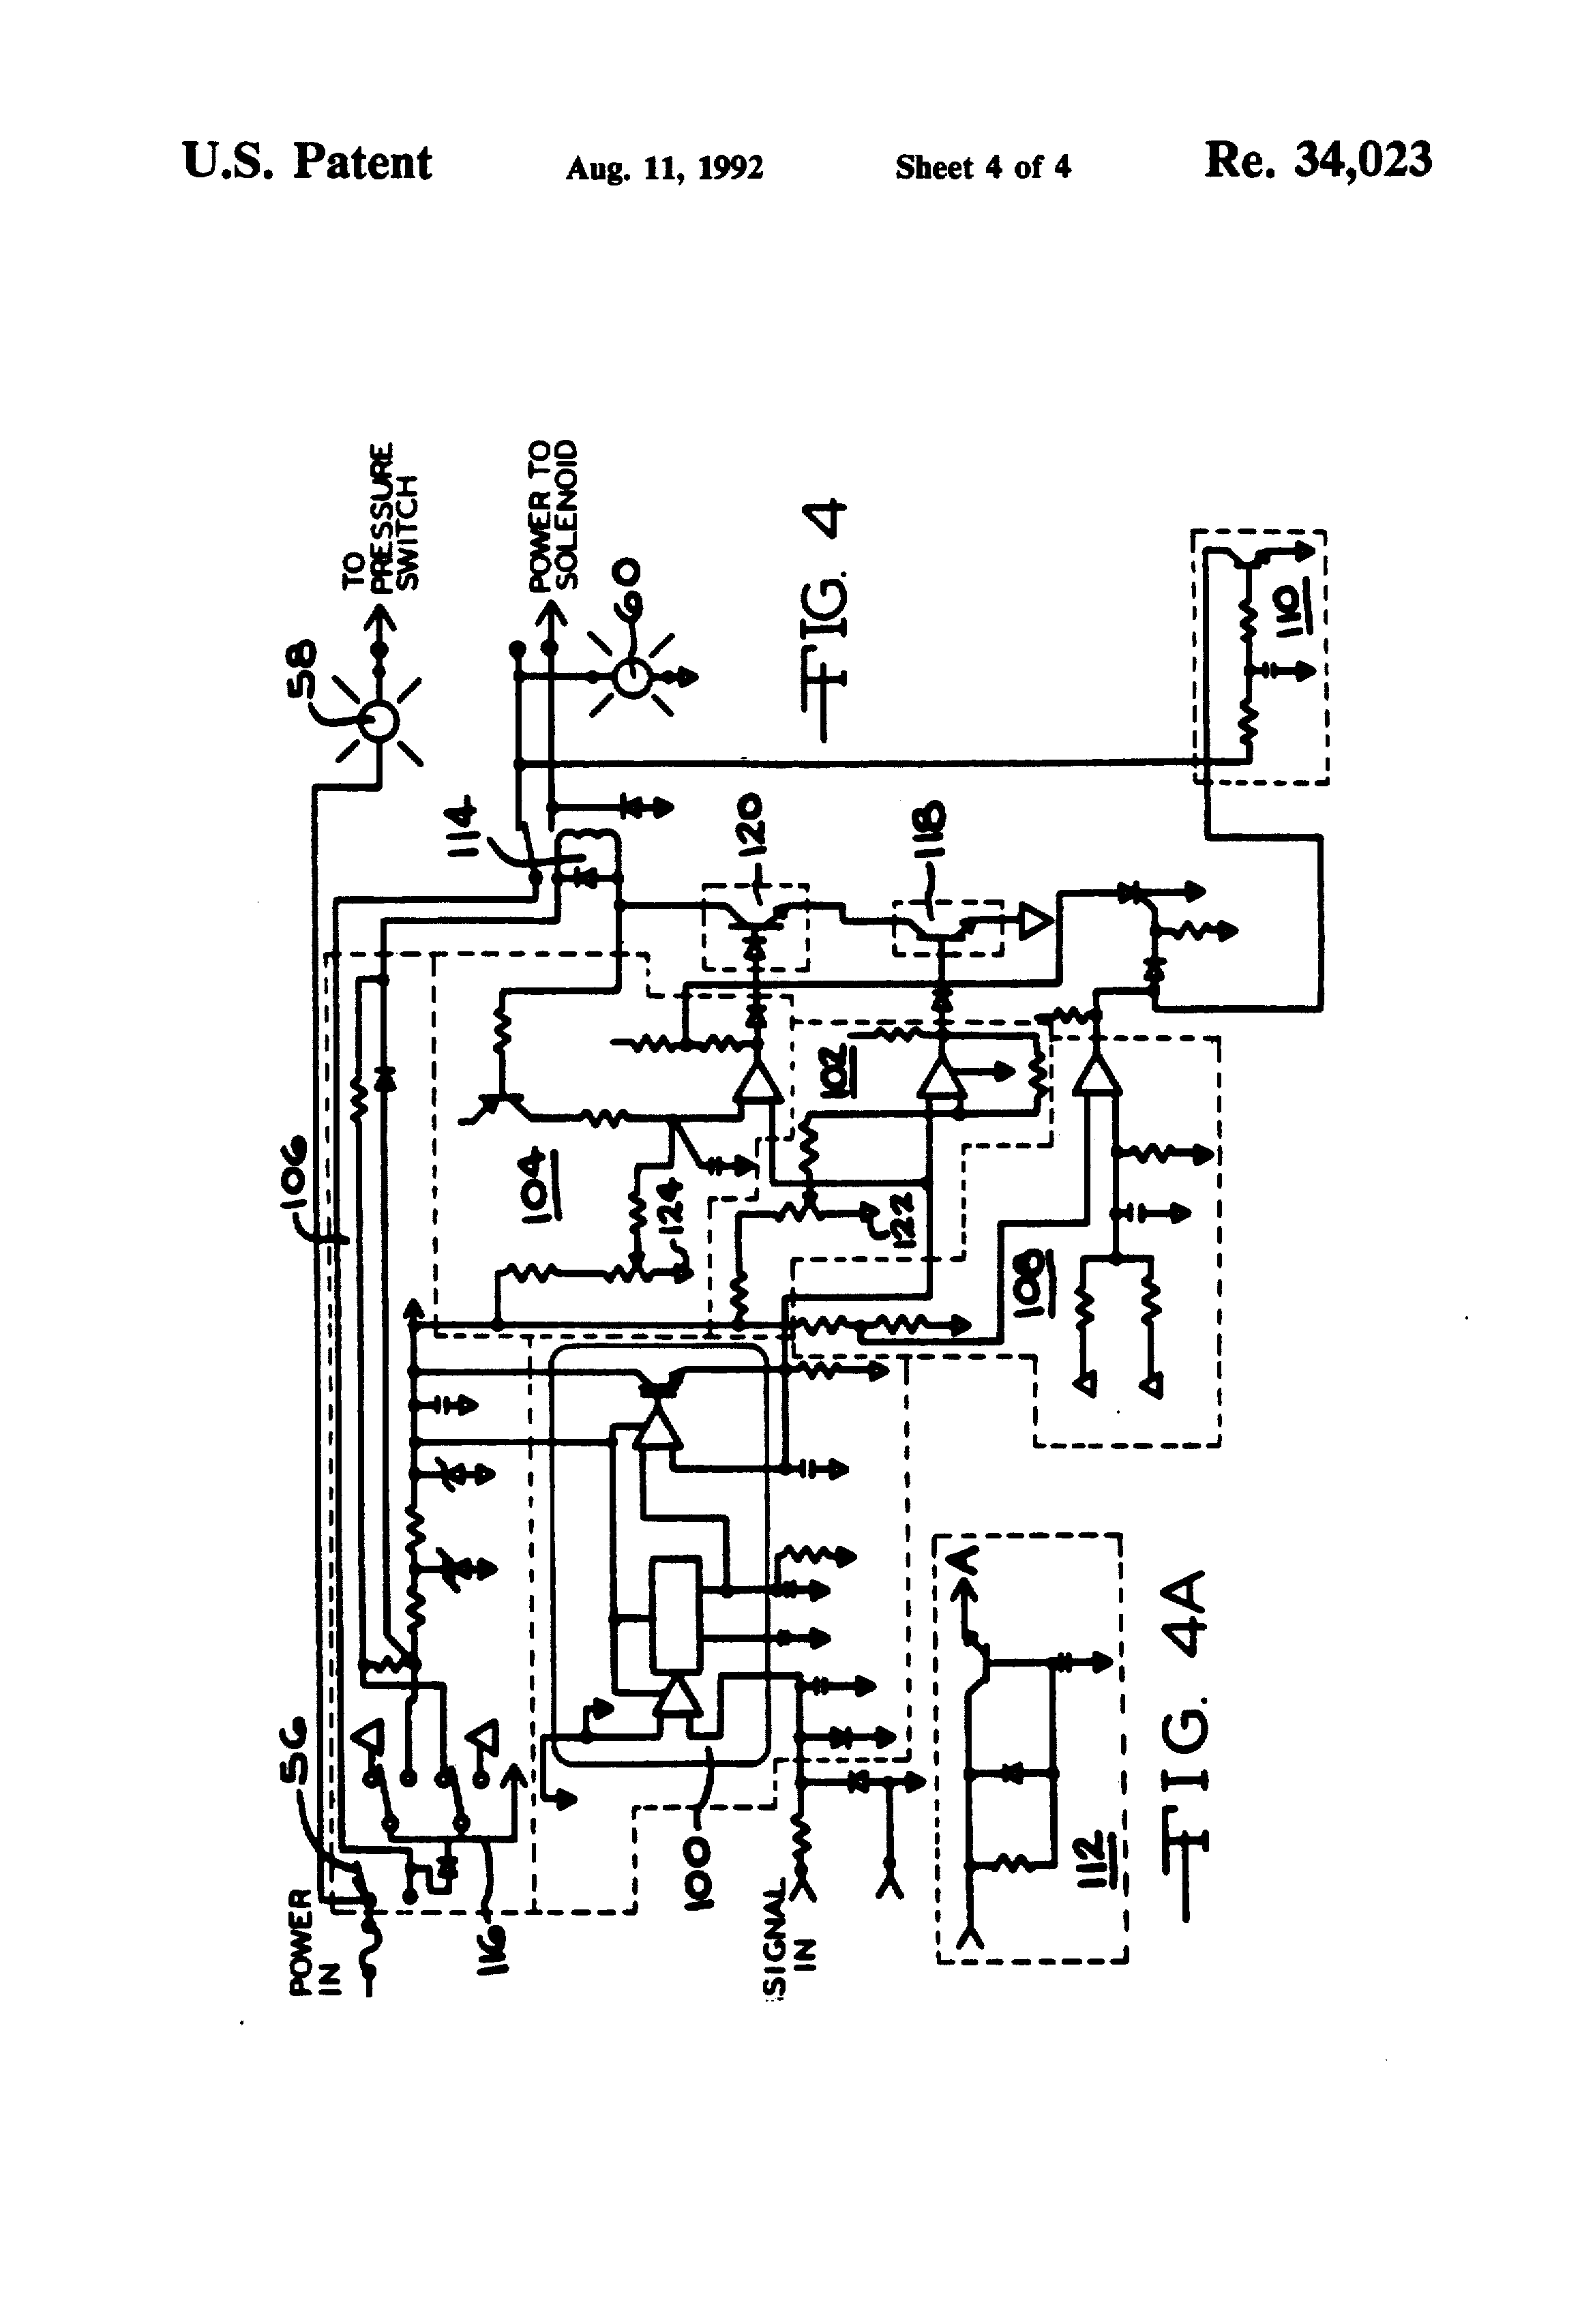 USRE34023 5 muncie pto wiring diagram muncie pto valve \u2022 wiring diagrams j chelsea pto wiring diagram at creativeand.co